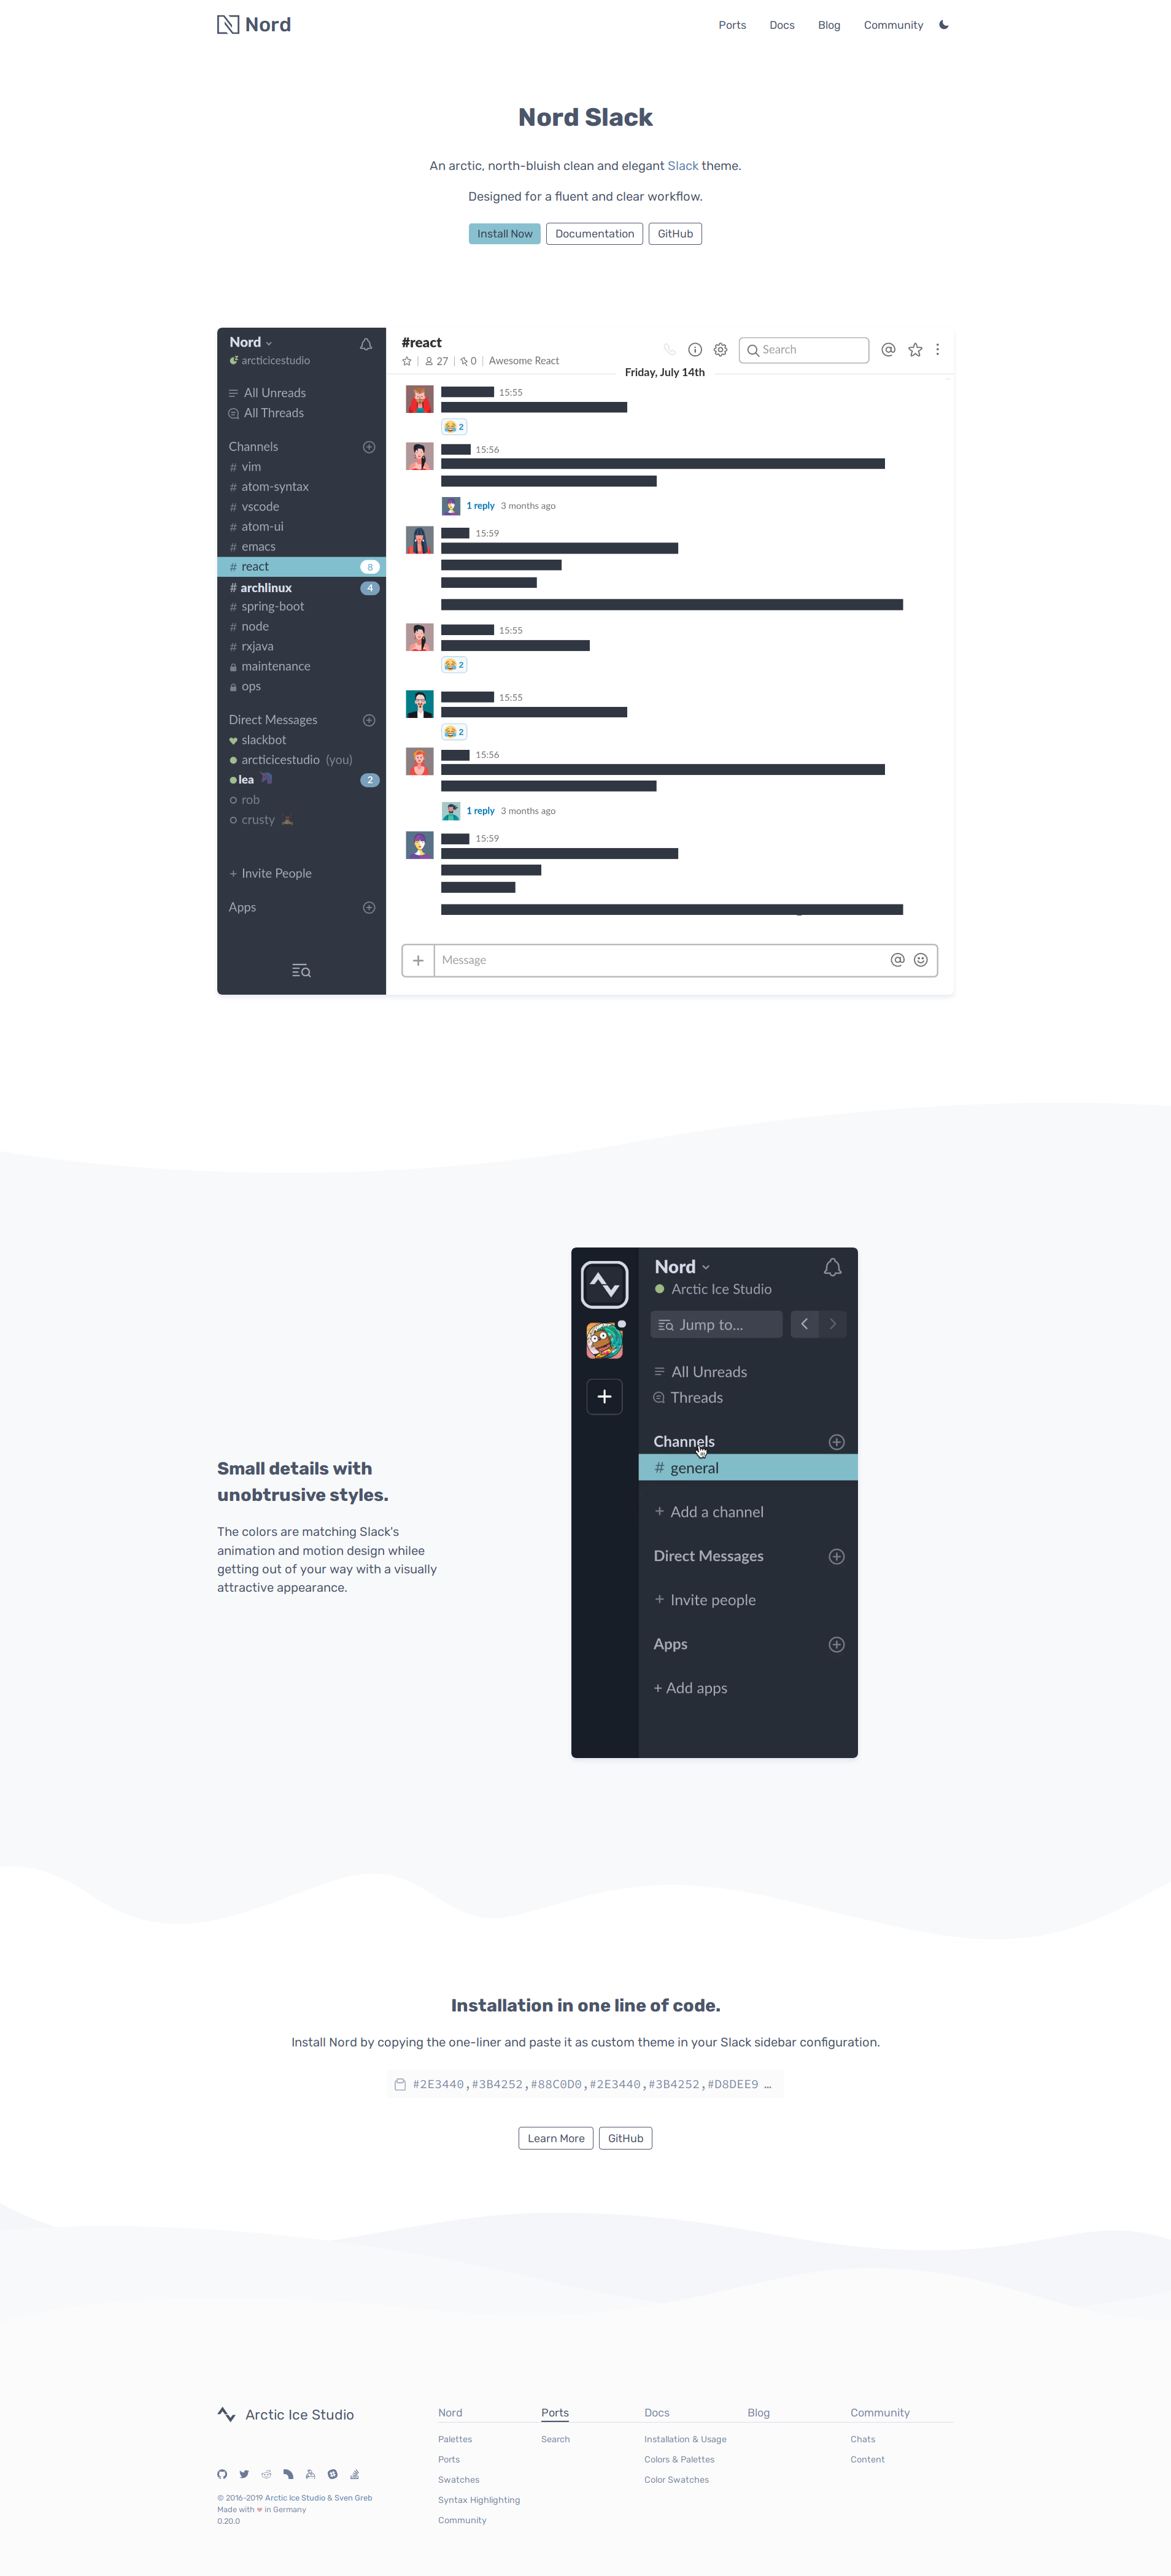 Preview: Nord Slack Port Project Landing Page